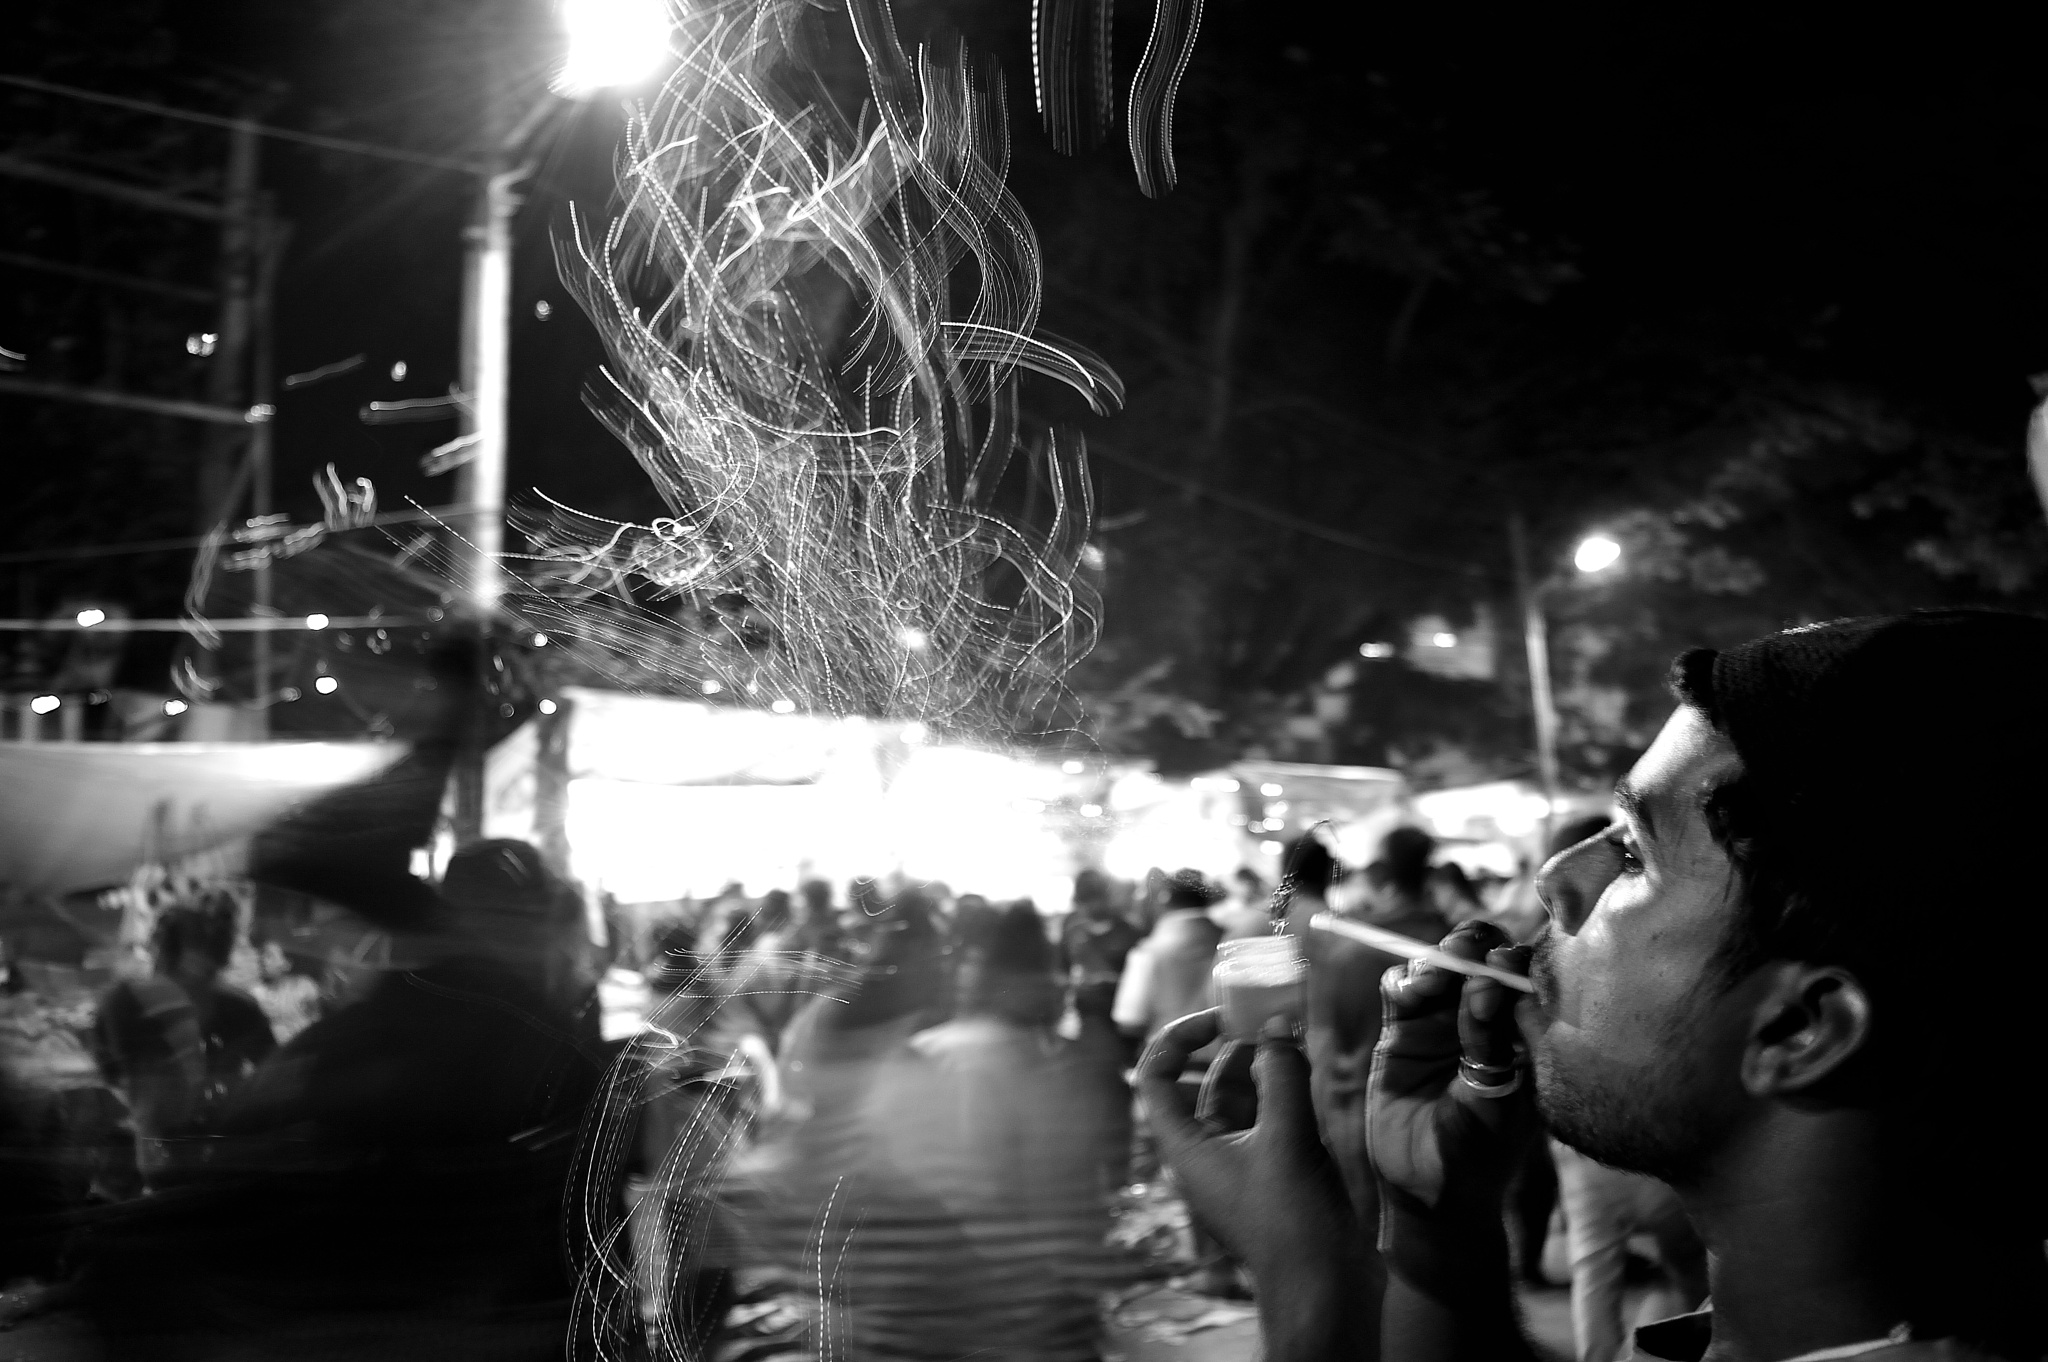 Bubble captured in slow shutter speed, B&W!!! by Sudharshan